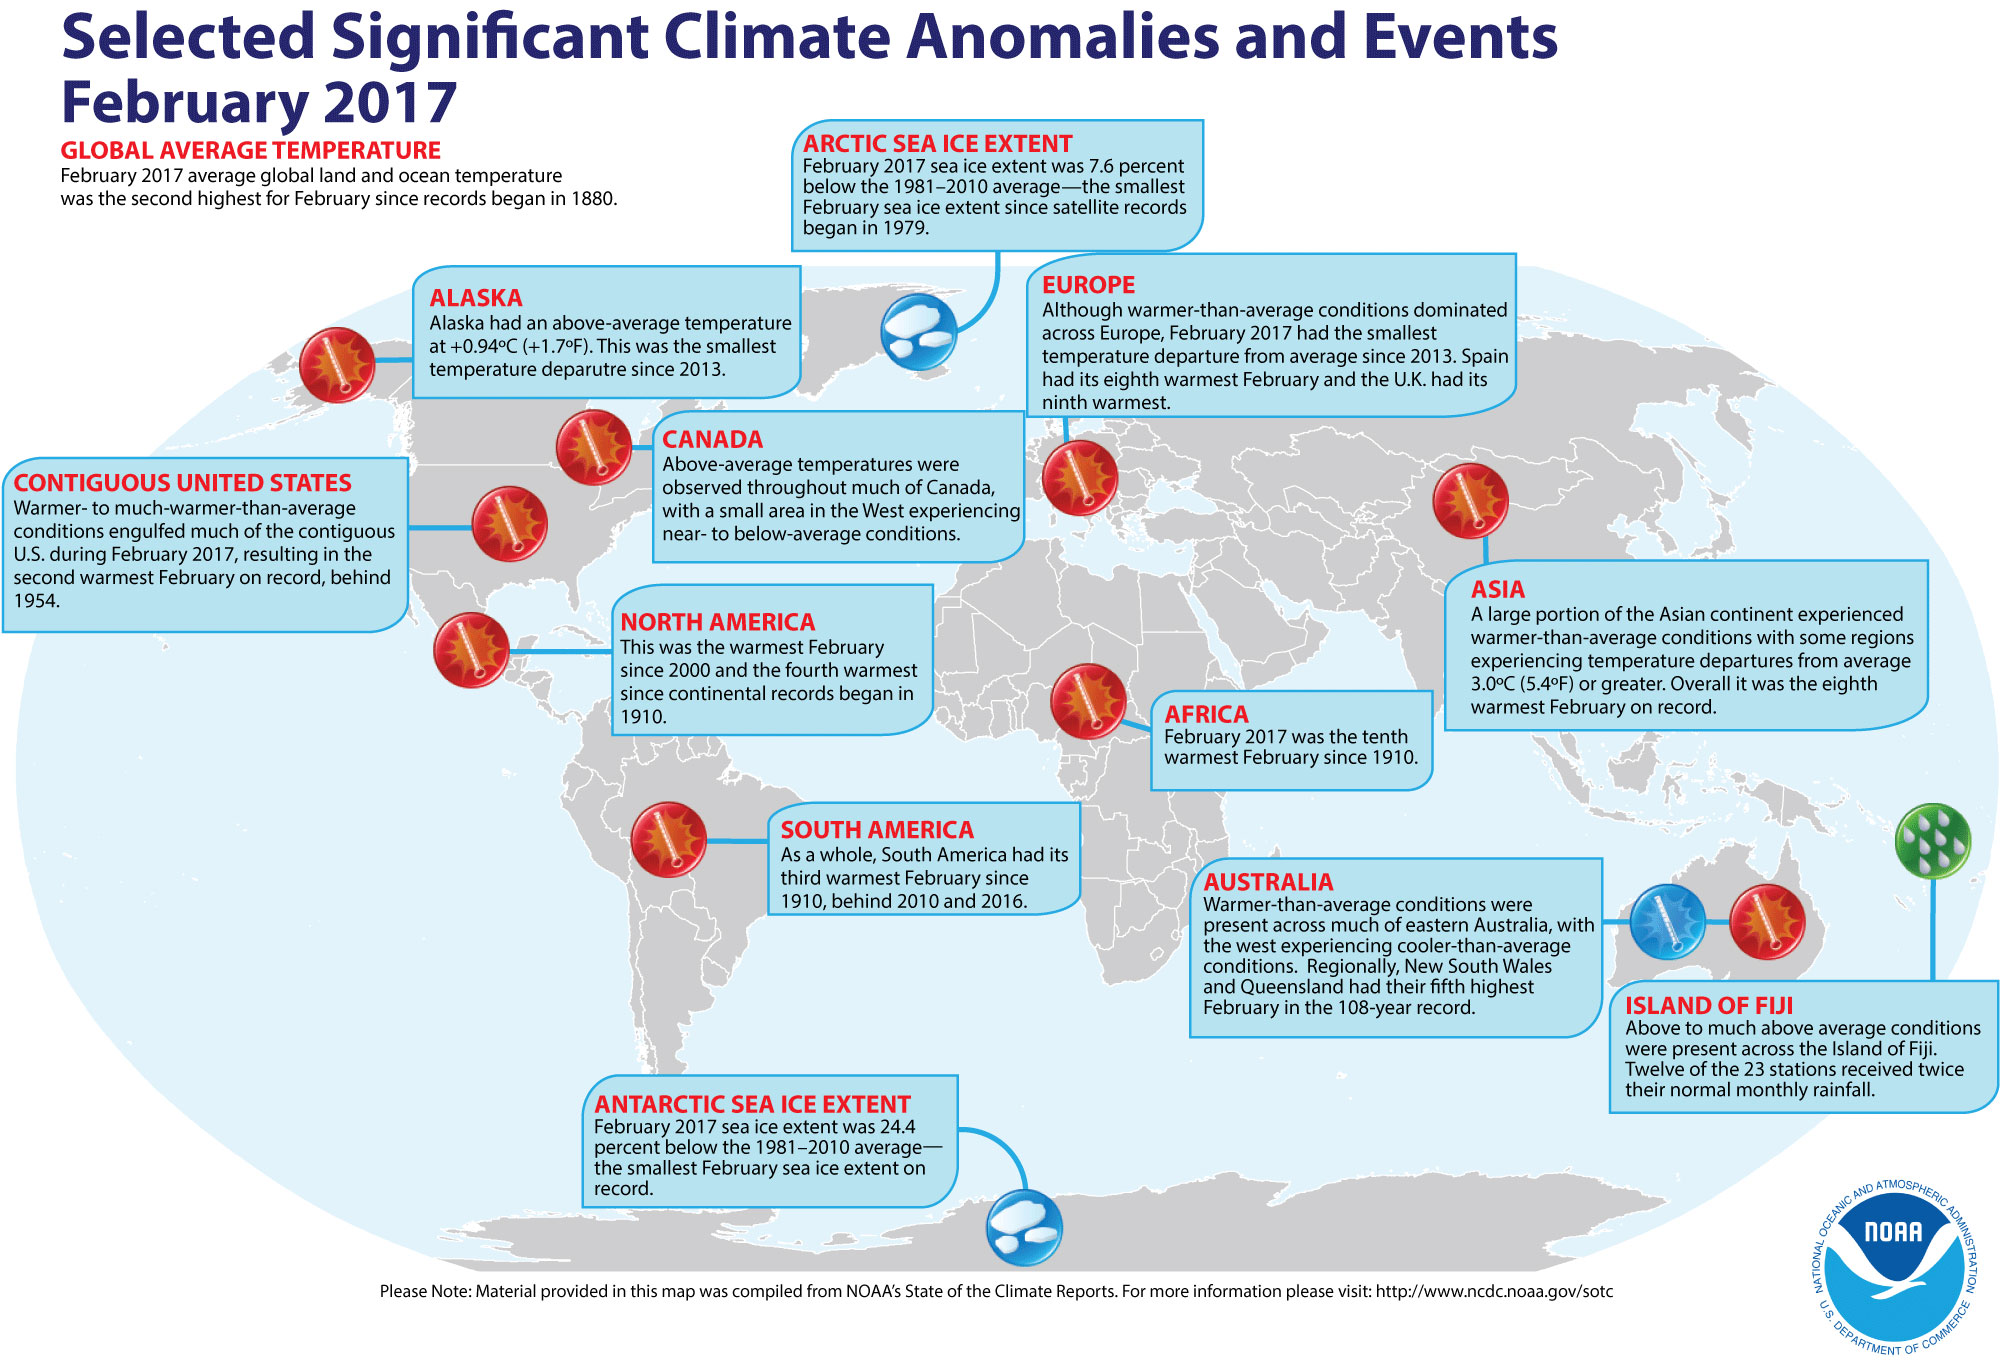 Map of global selected significant climate anomalies and events for February 2017